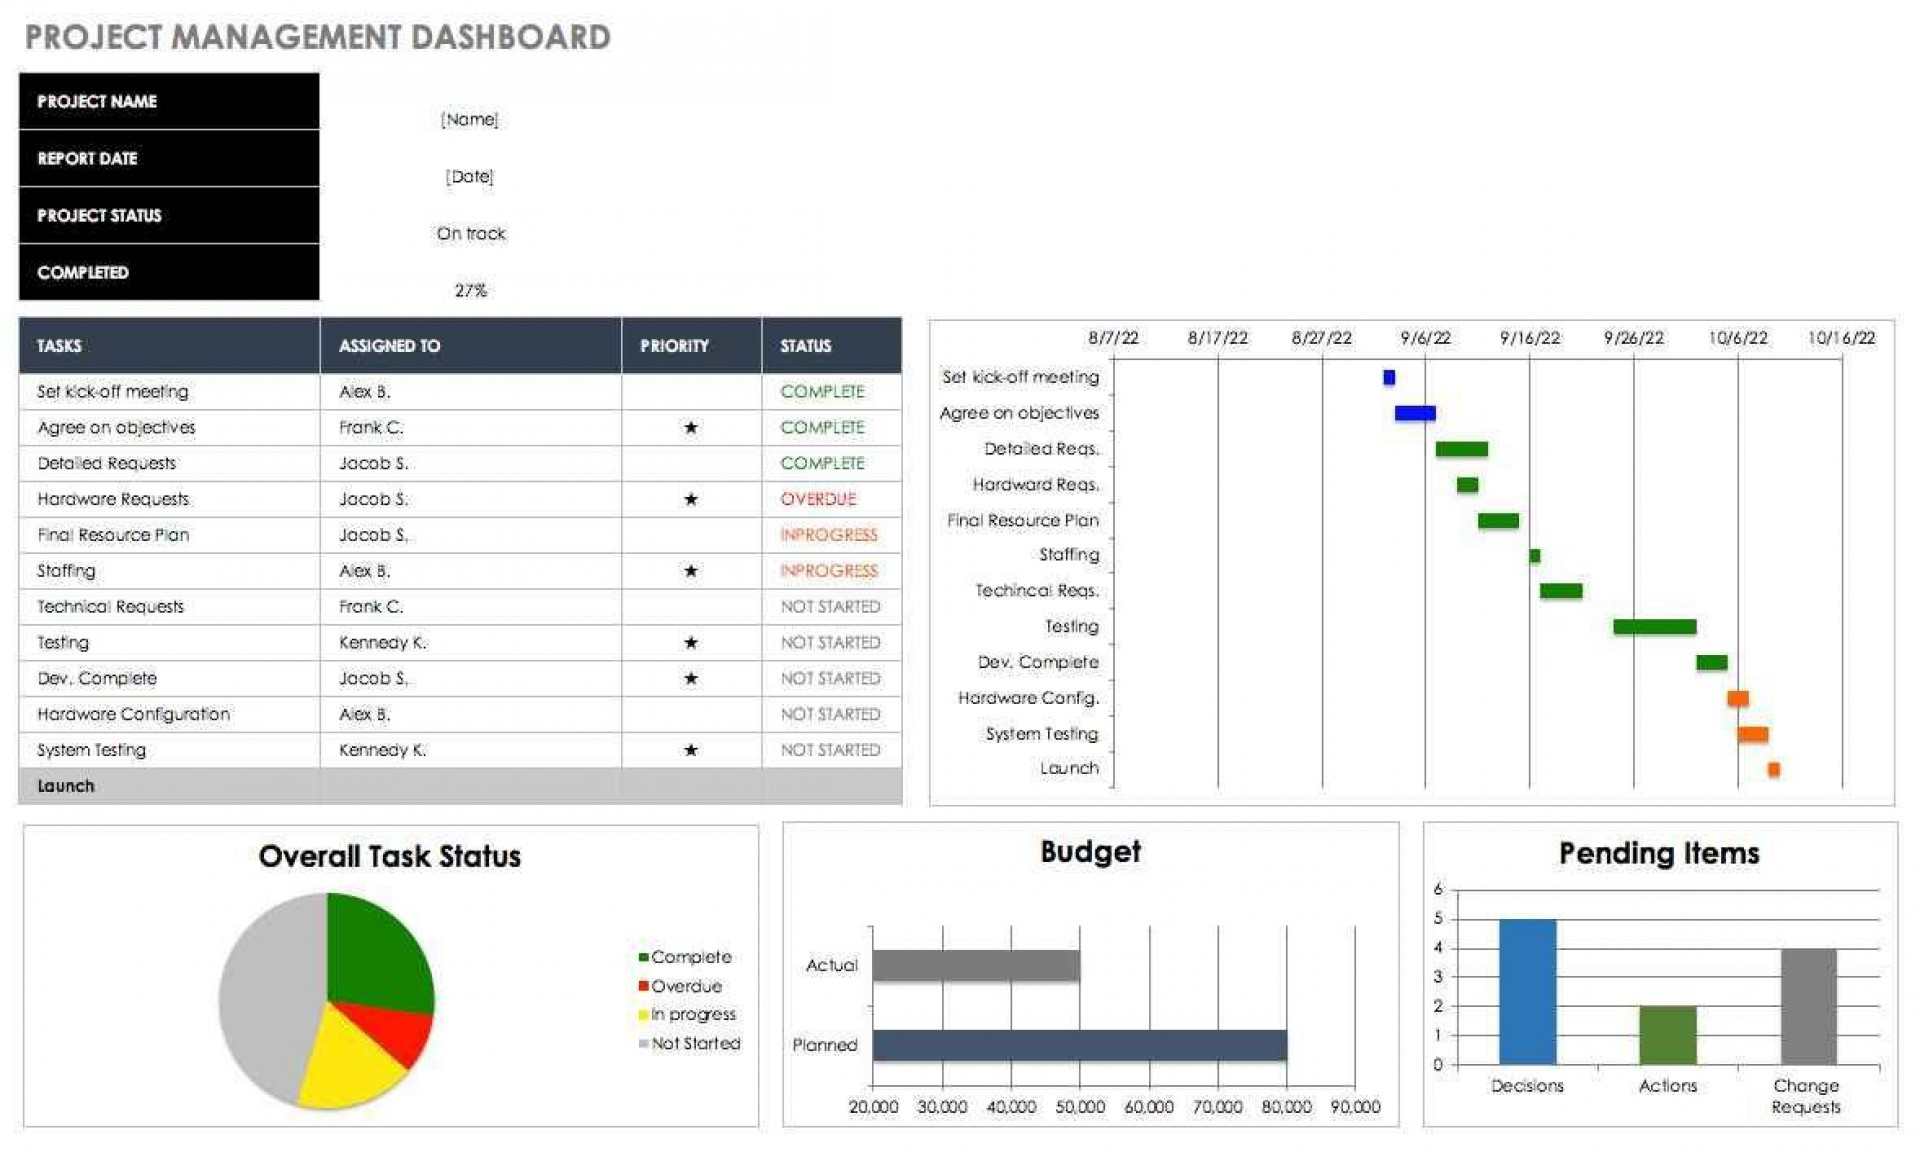 001 Best Project Management Tracking Template Free Excel Inspiration  Dashboard Construction1920